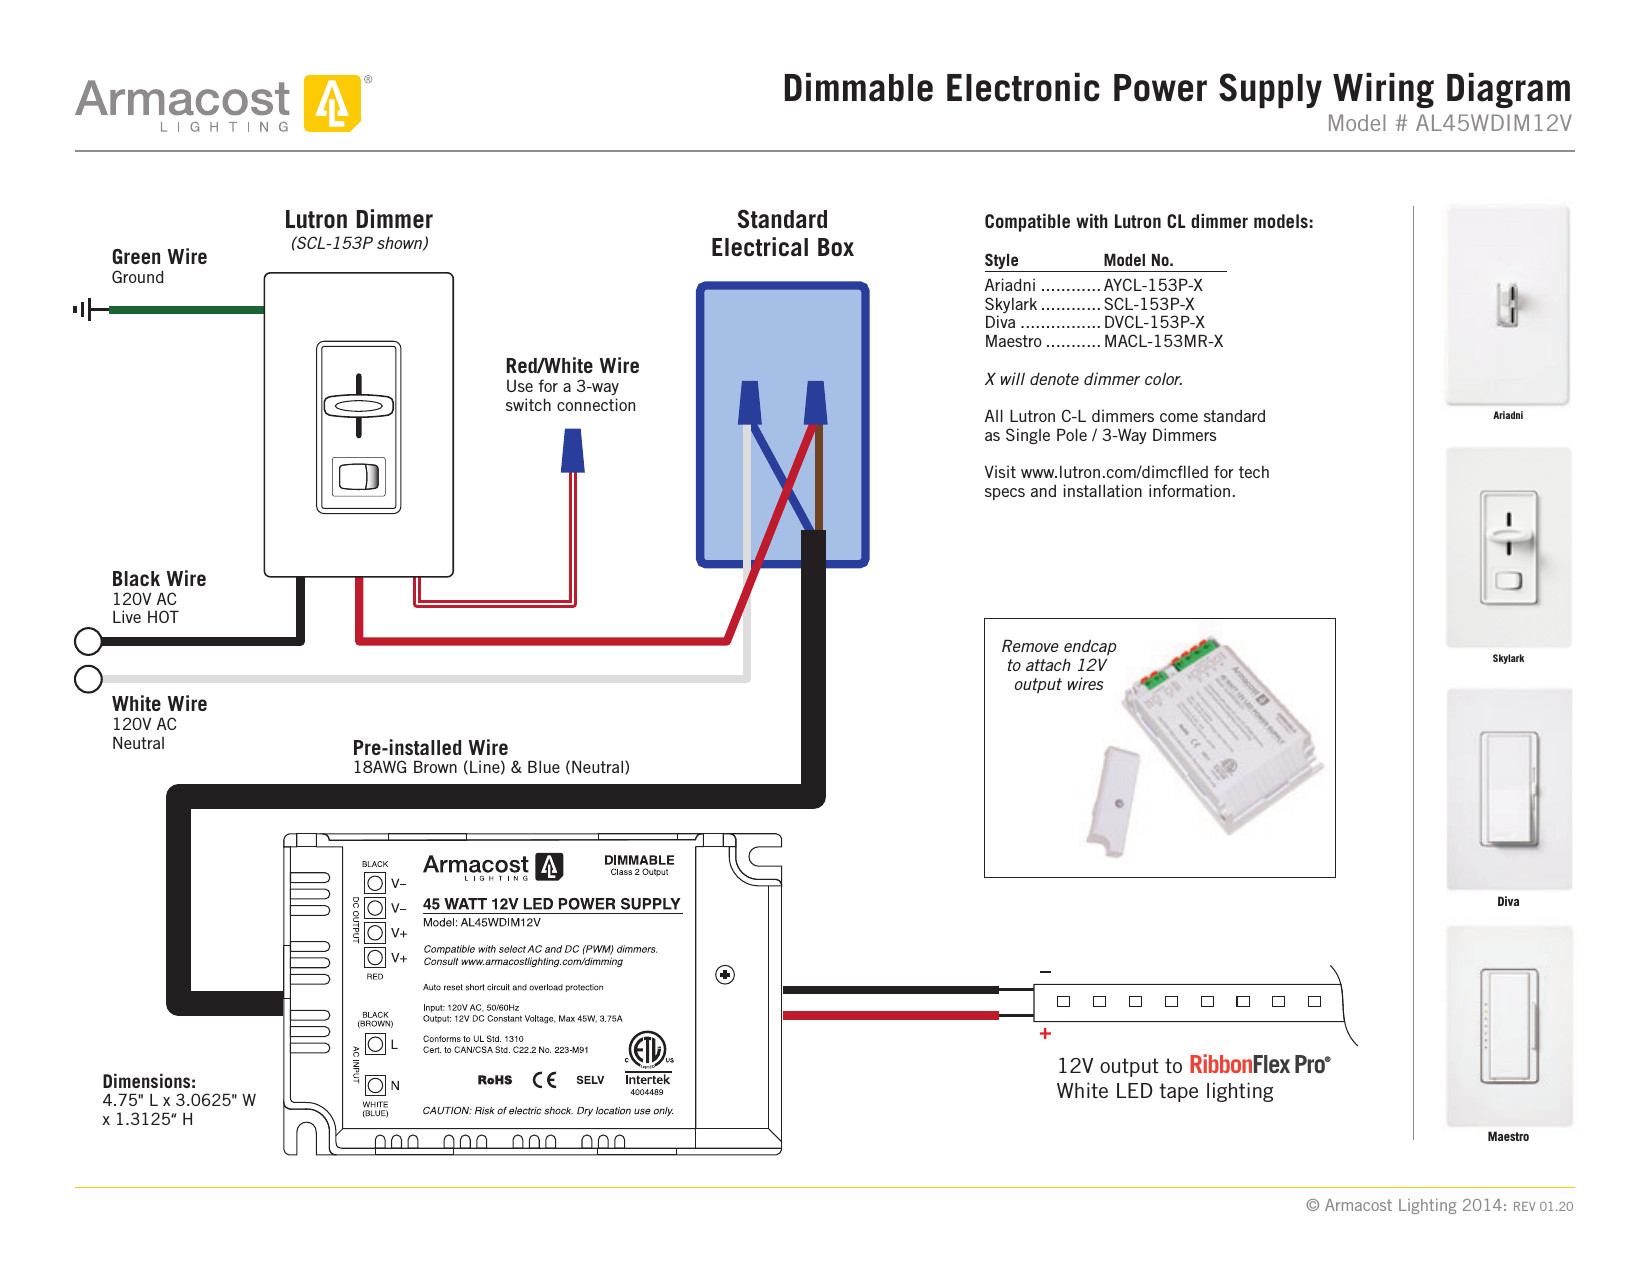 lutron dimmer switch wiring diagram Download-Lutron Led Dimmer Switch Wiring Diagram Beautiful Lutron Dimmer Switch Troubleshooting Gallery Free 9-k